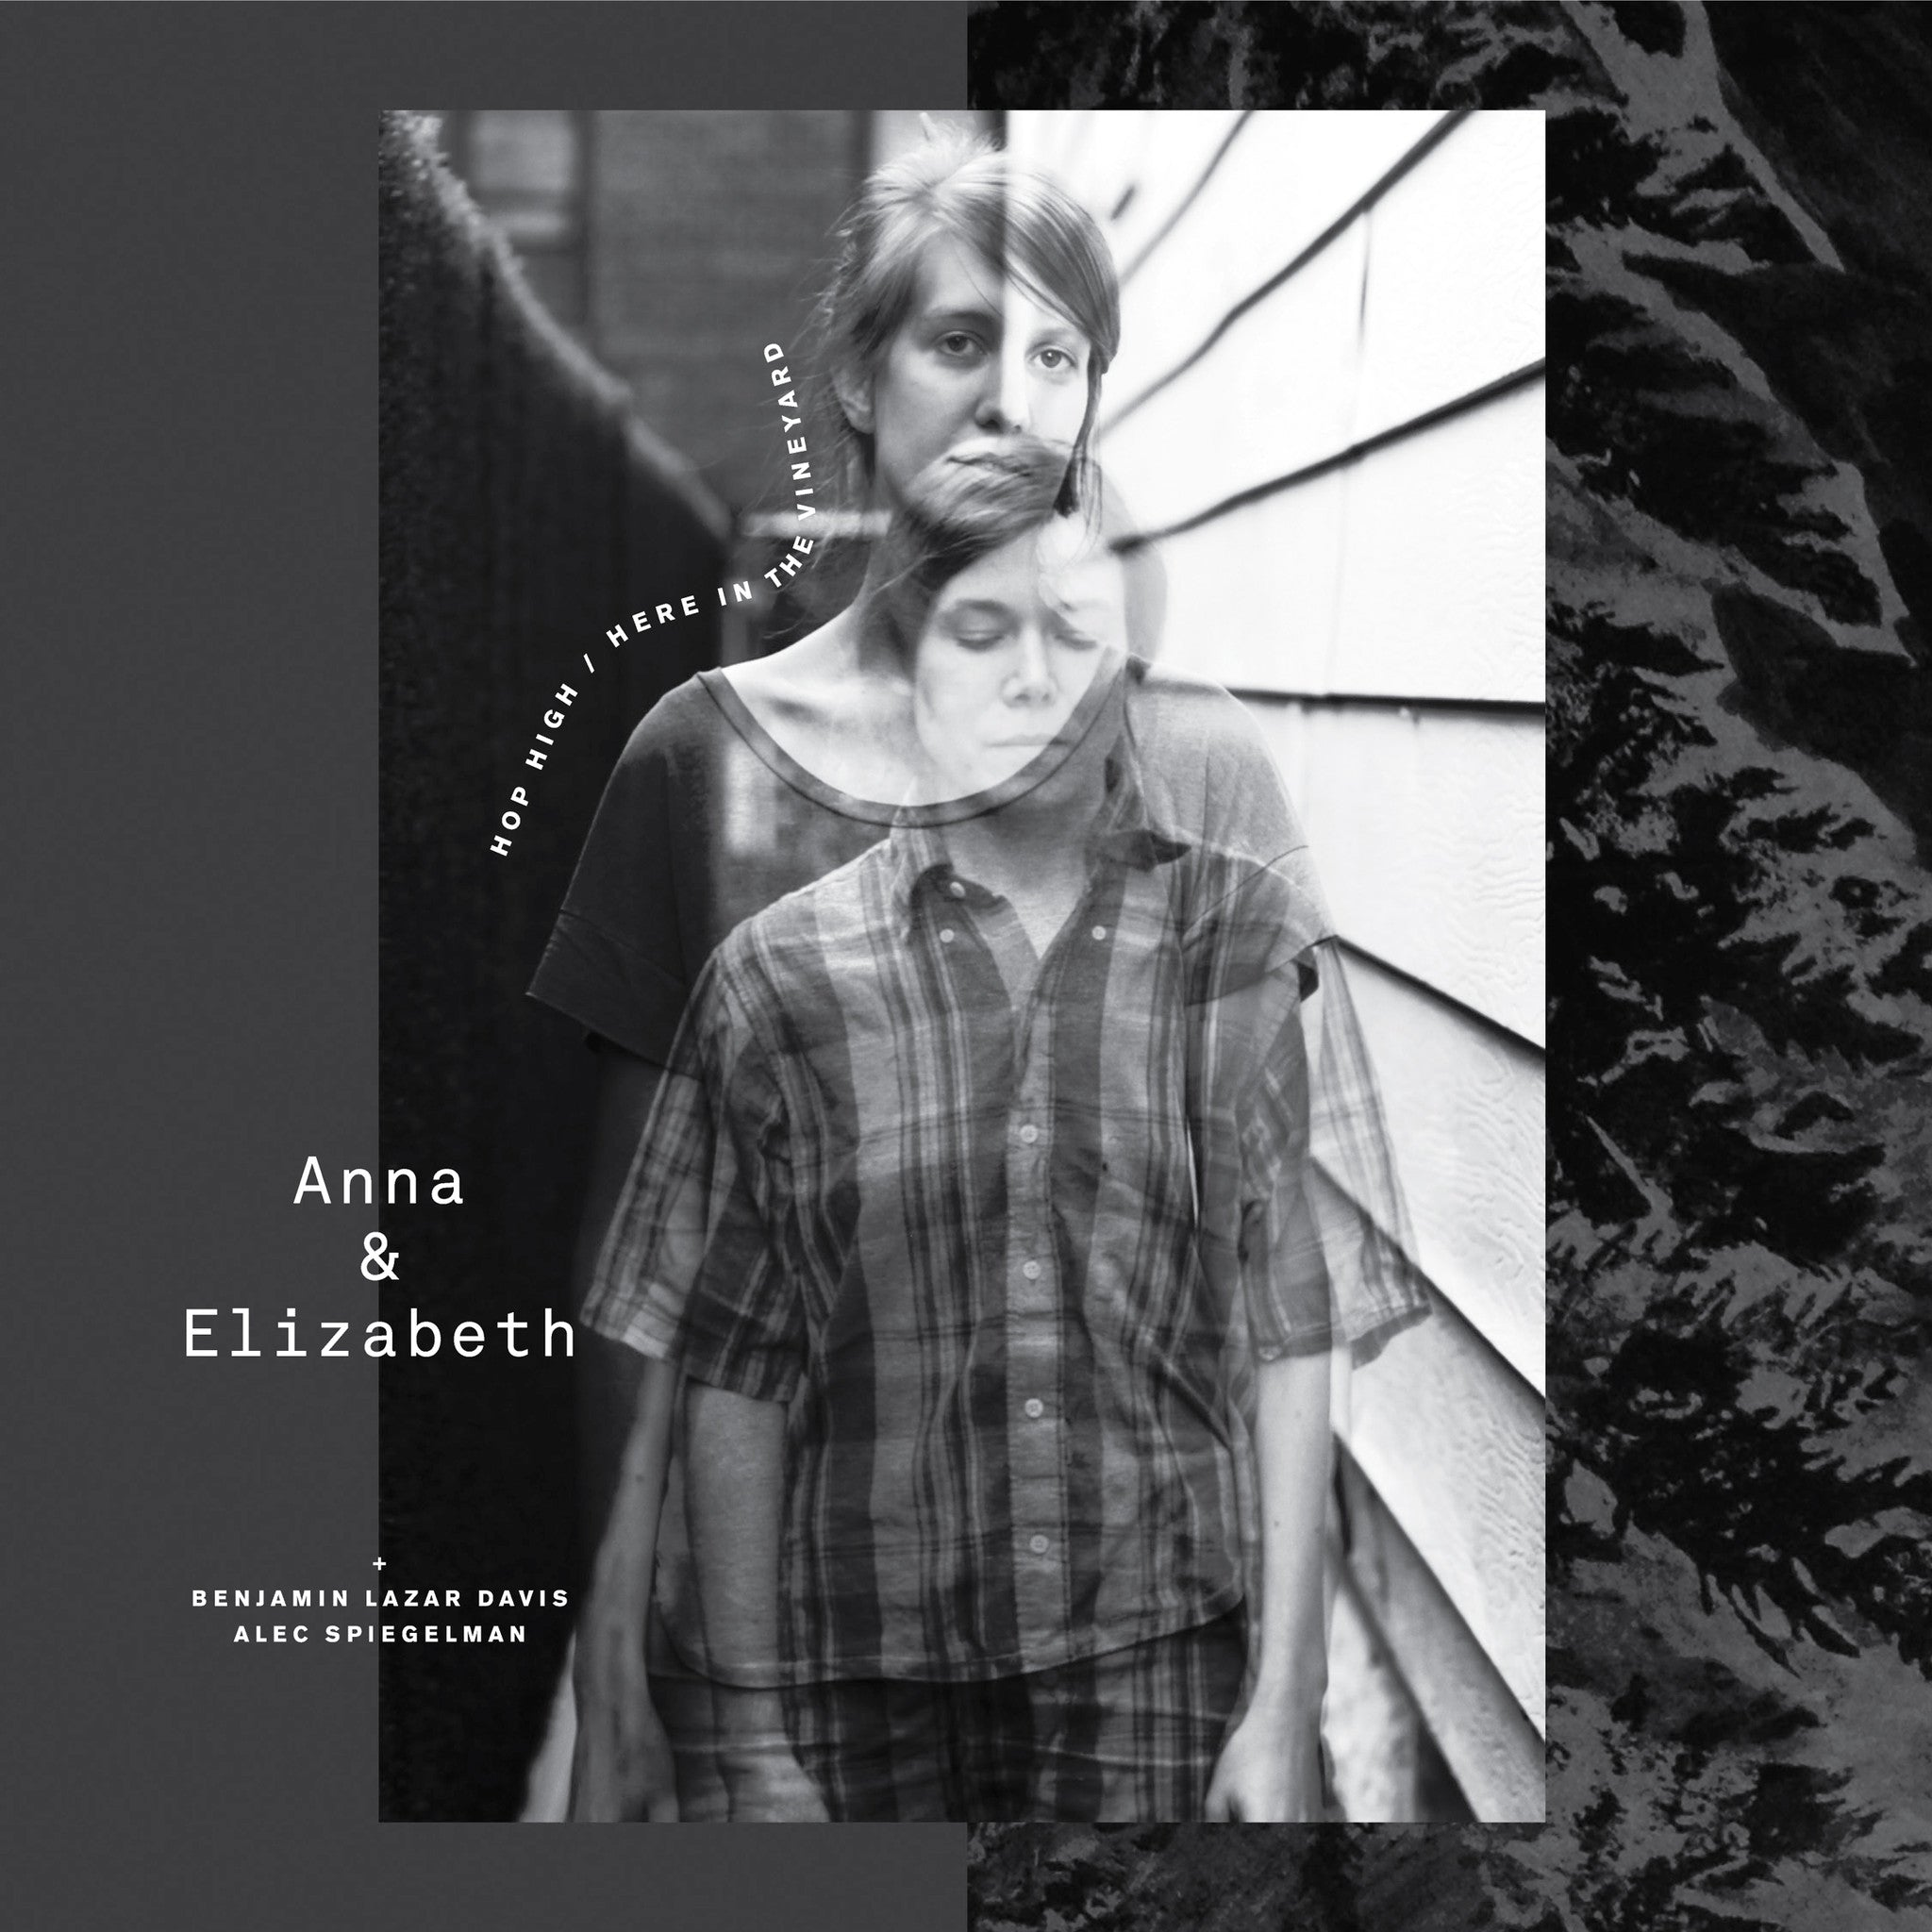 New 7-inch Vinyl Single from Anna & Elizabeth Out Jan 27